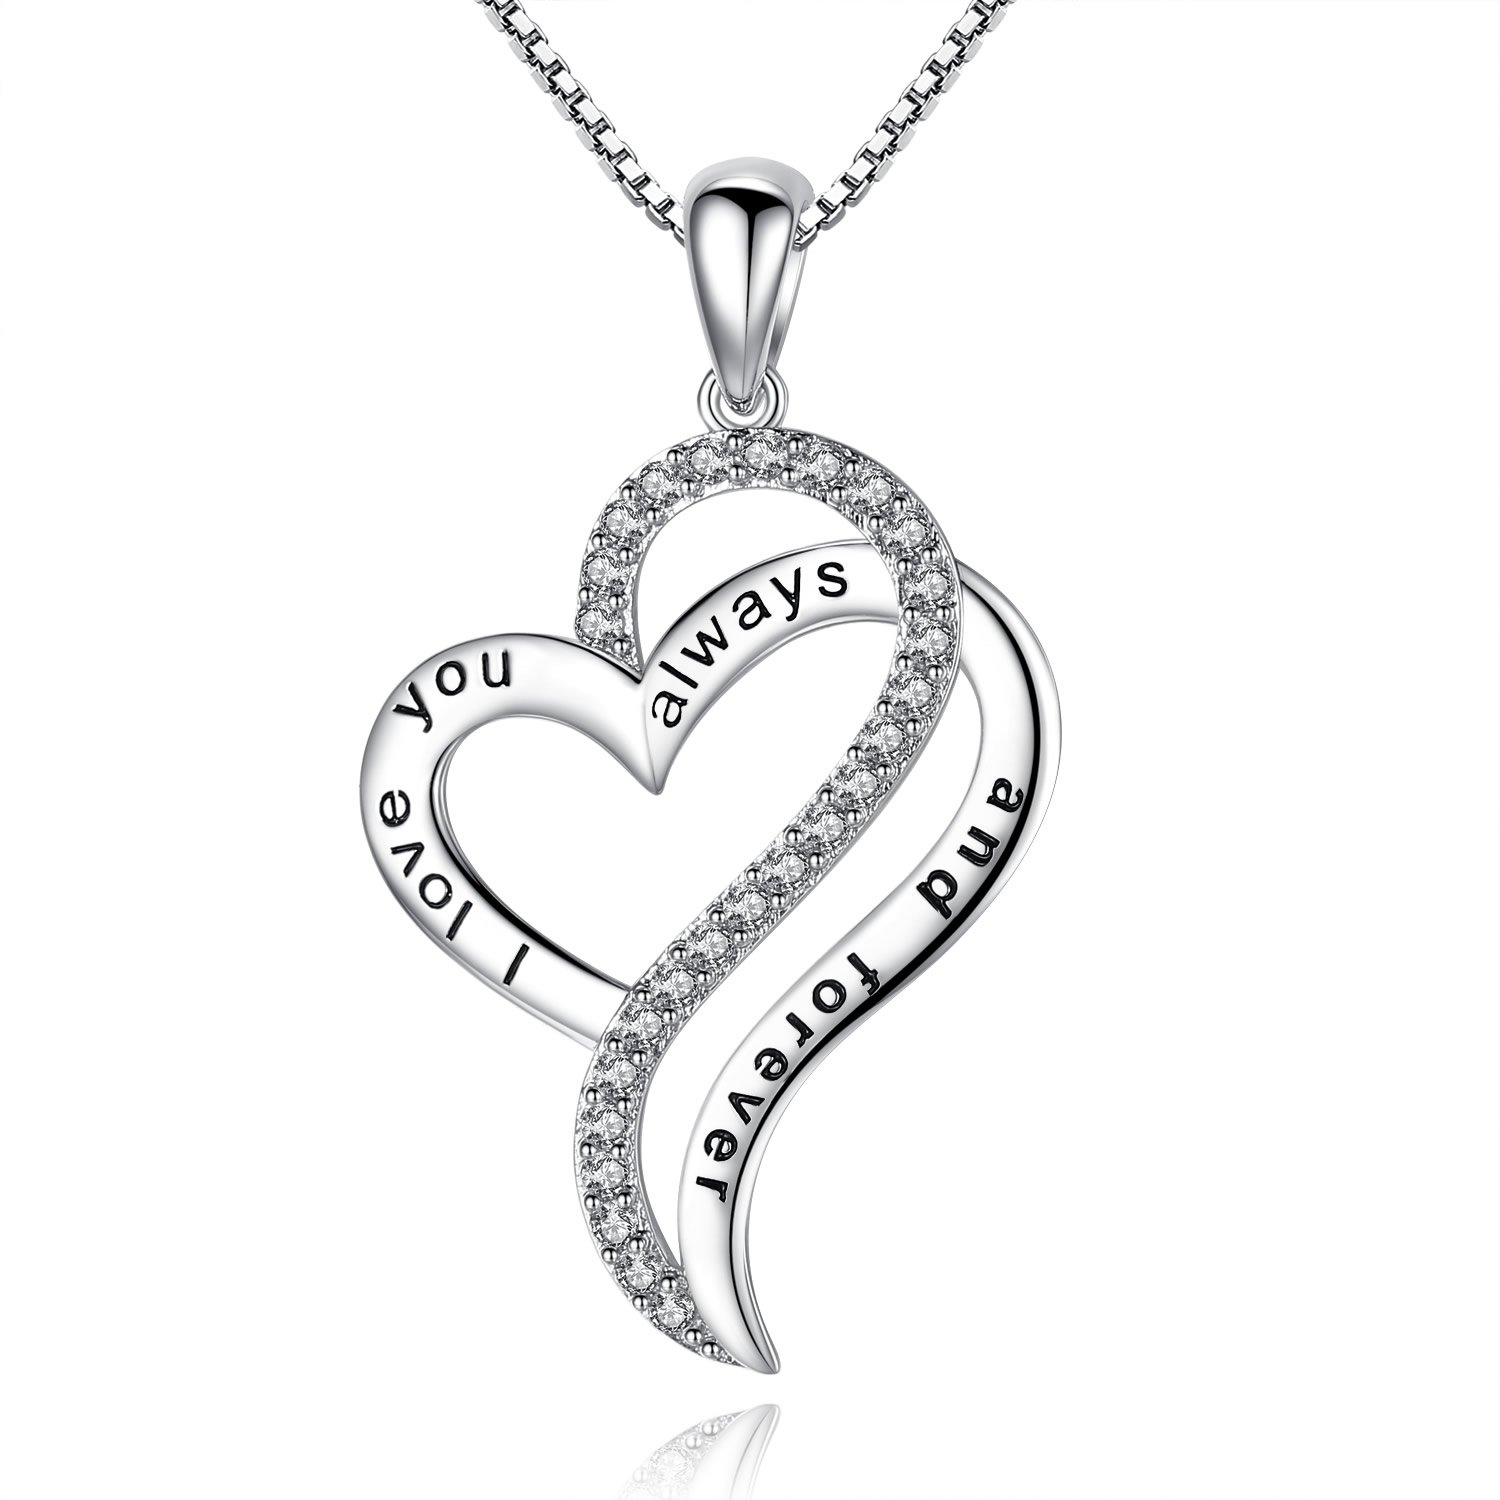 1500x1500 I Love You Always And Forever' Heart Love Pendant Necklace, Gifts